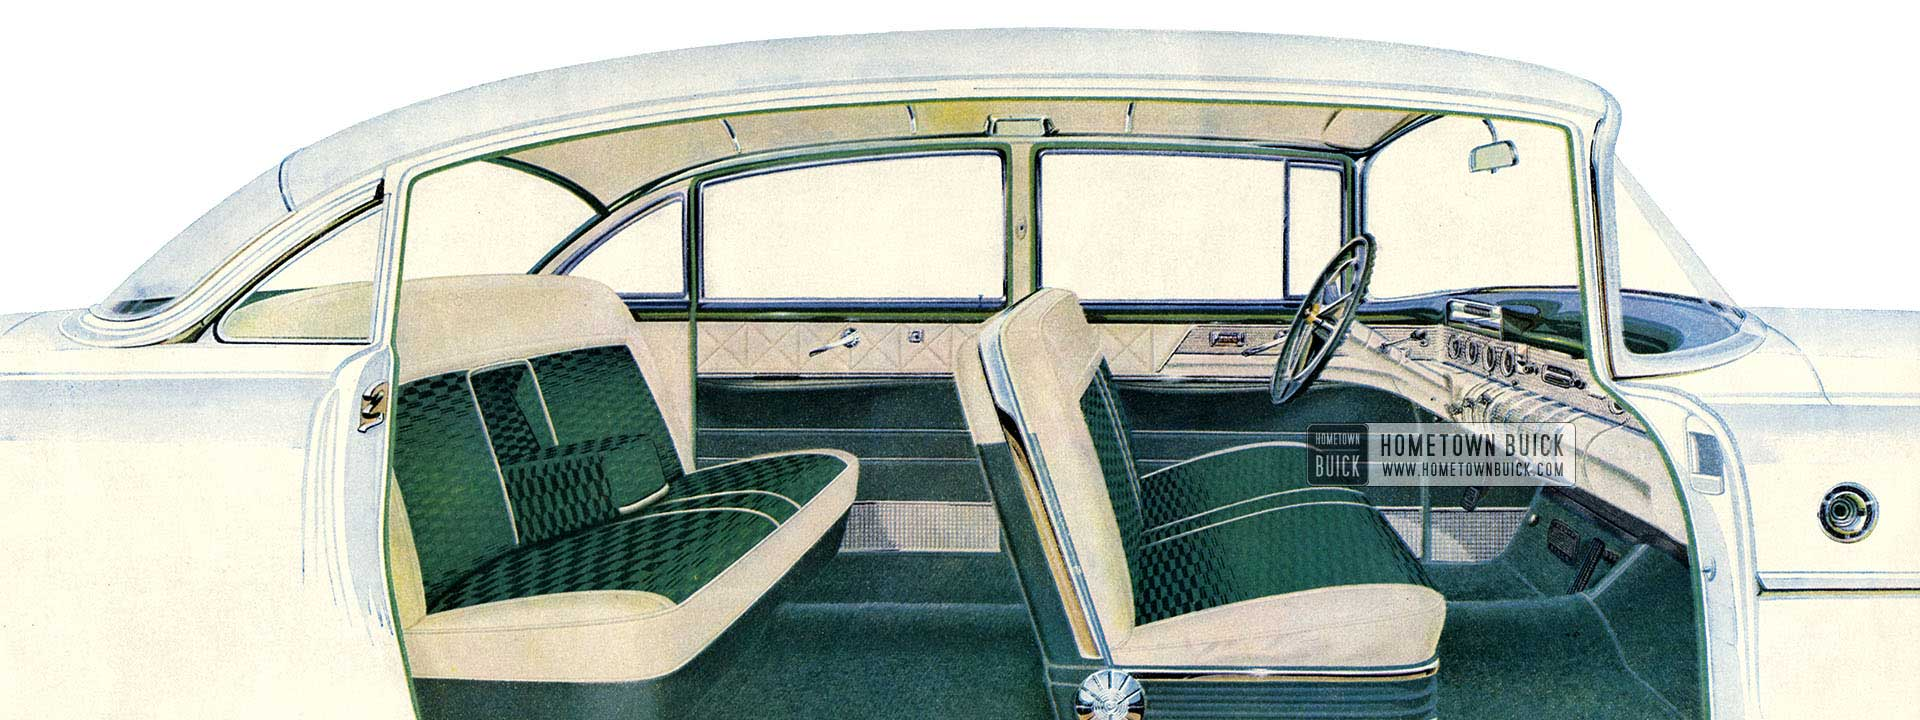 1955 Buick Interior Slider